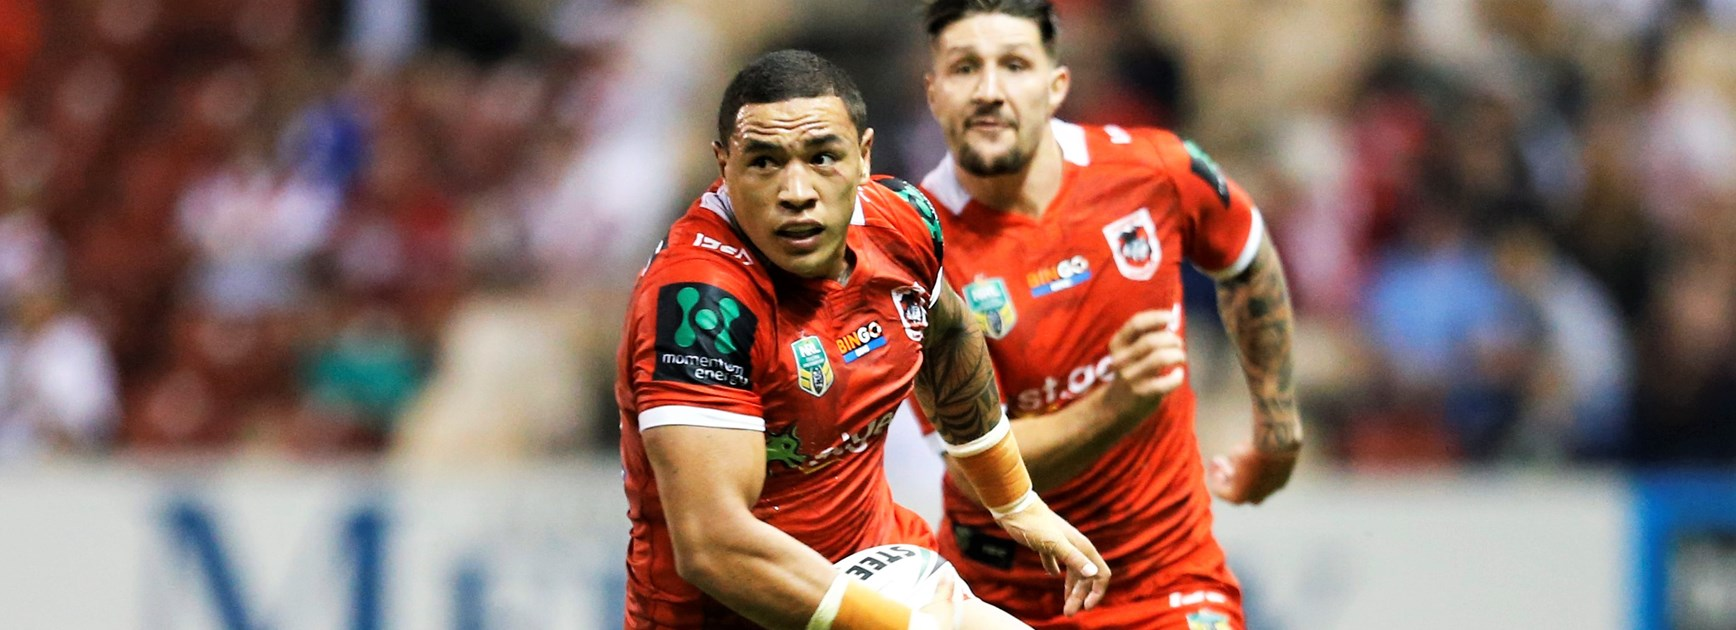 Dragons back-rower Tyson Frizell.